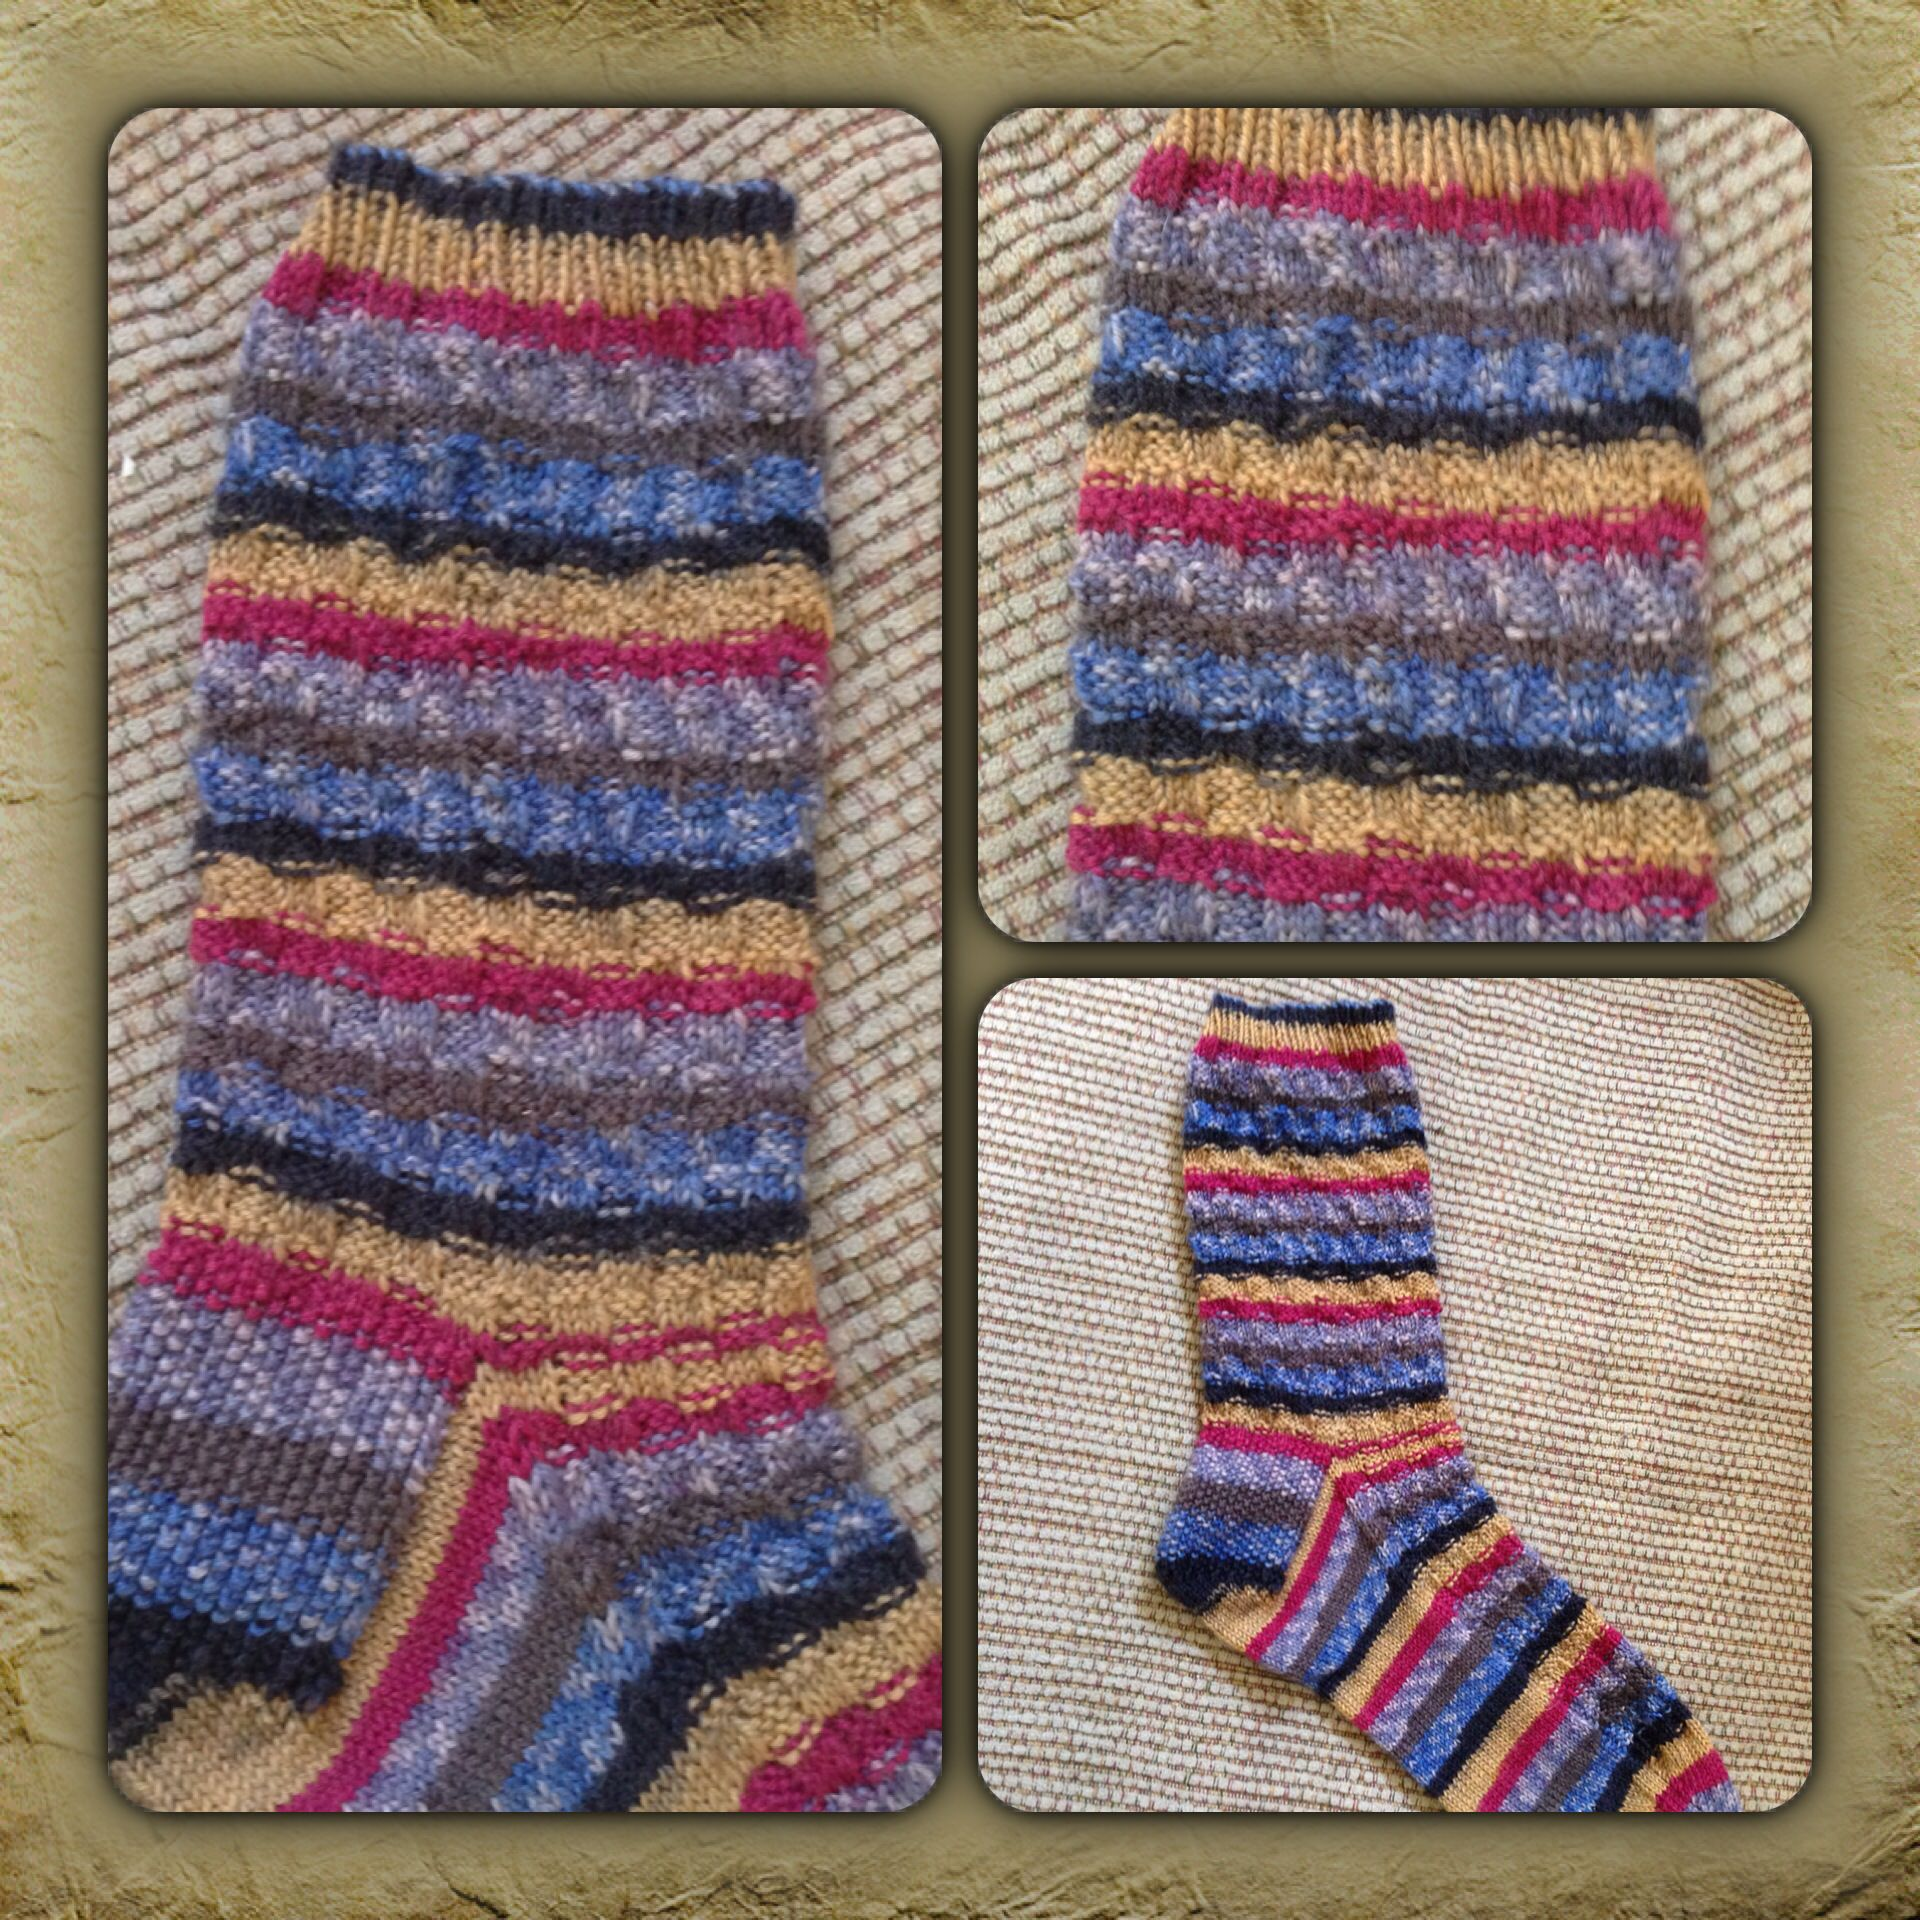 Love knitting socks!!!